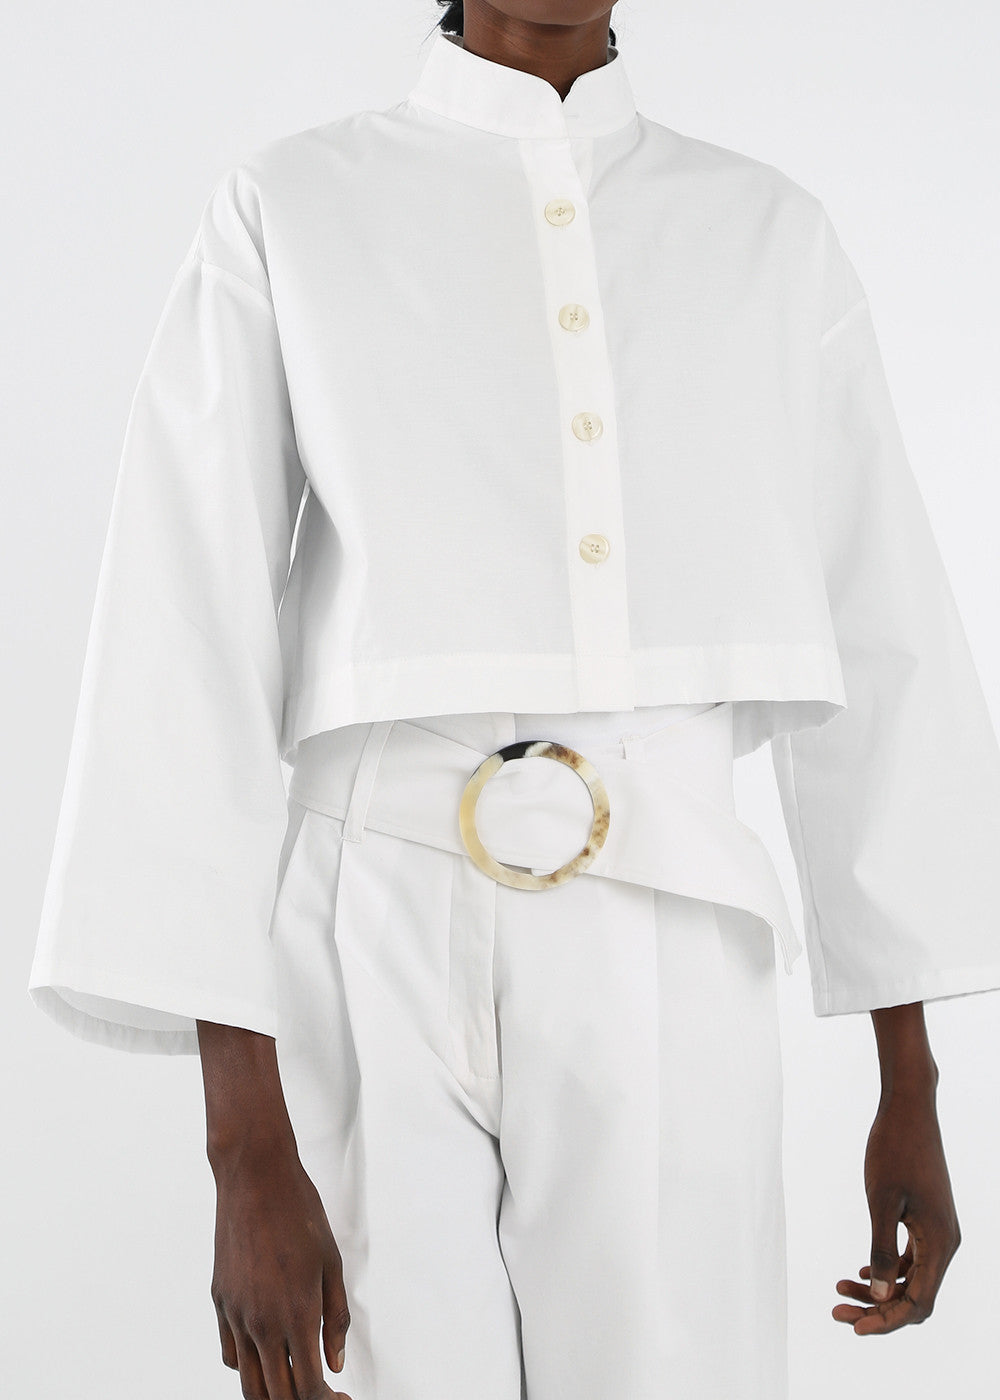 Delfina Balda White Armonia Button Up - New Classics Studios